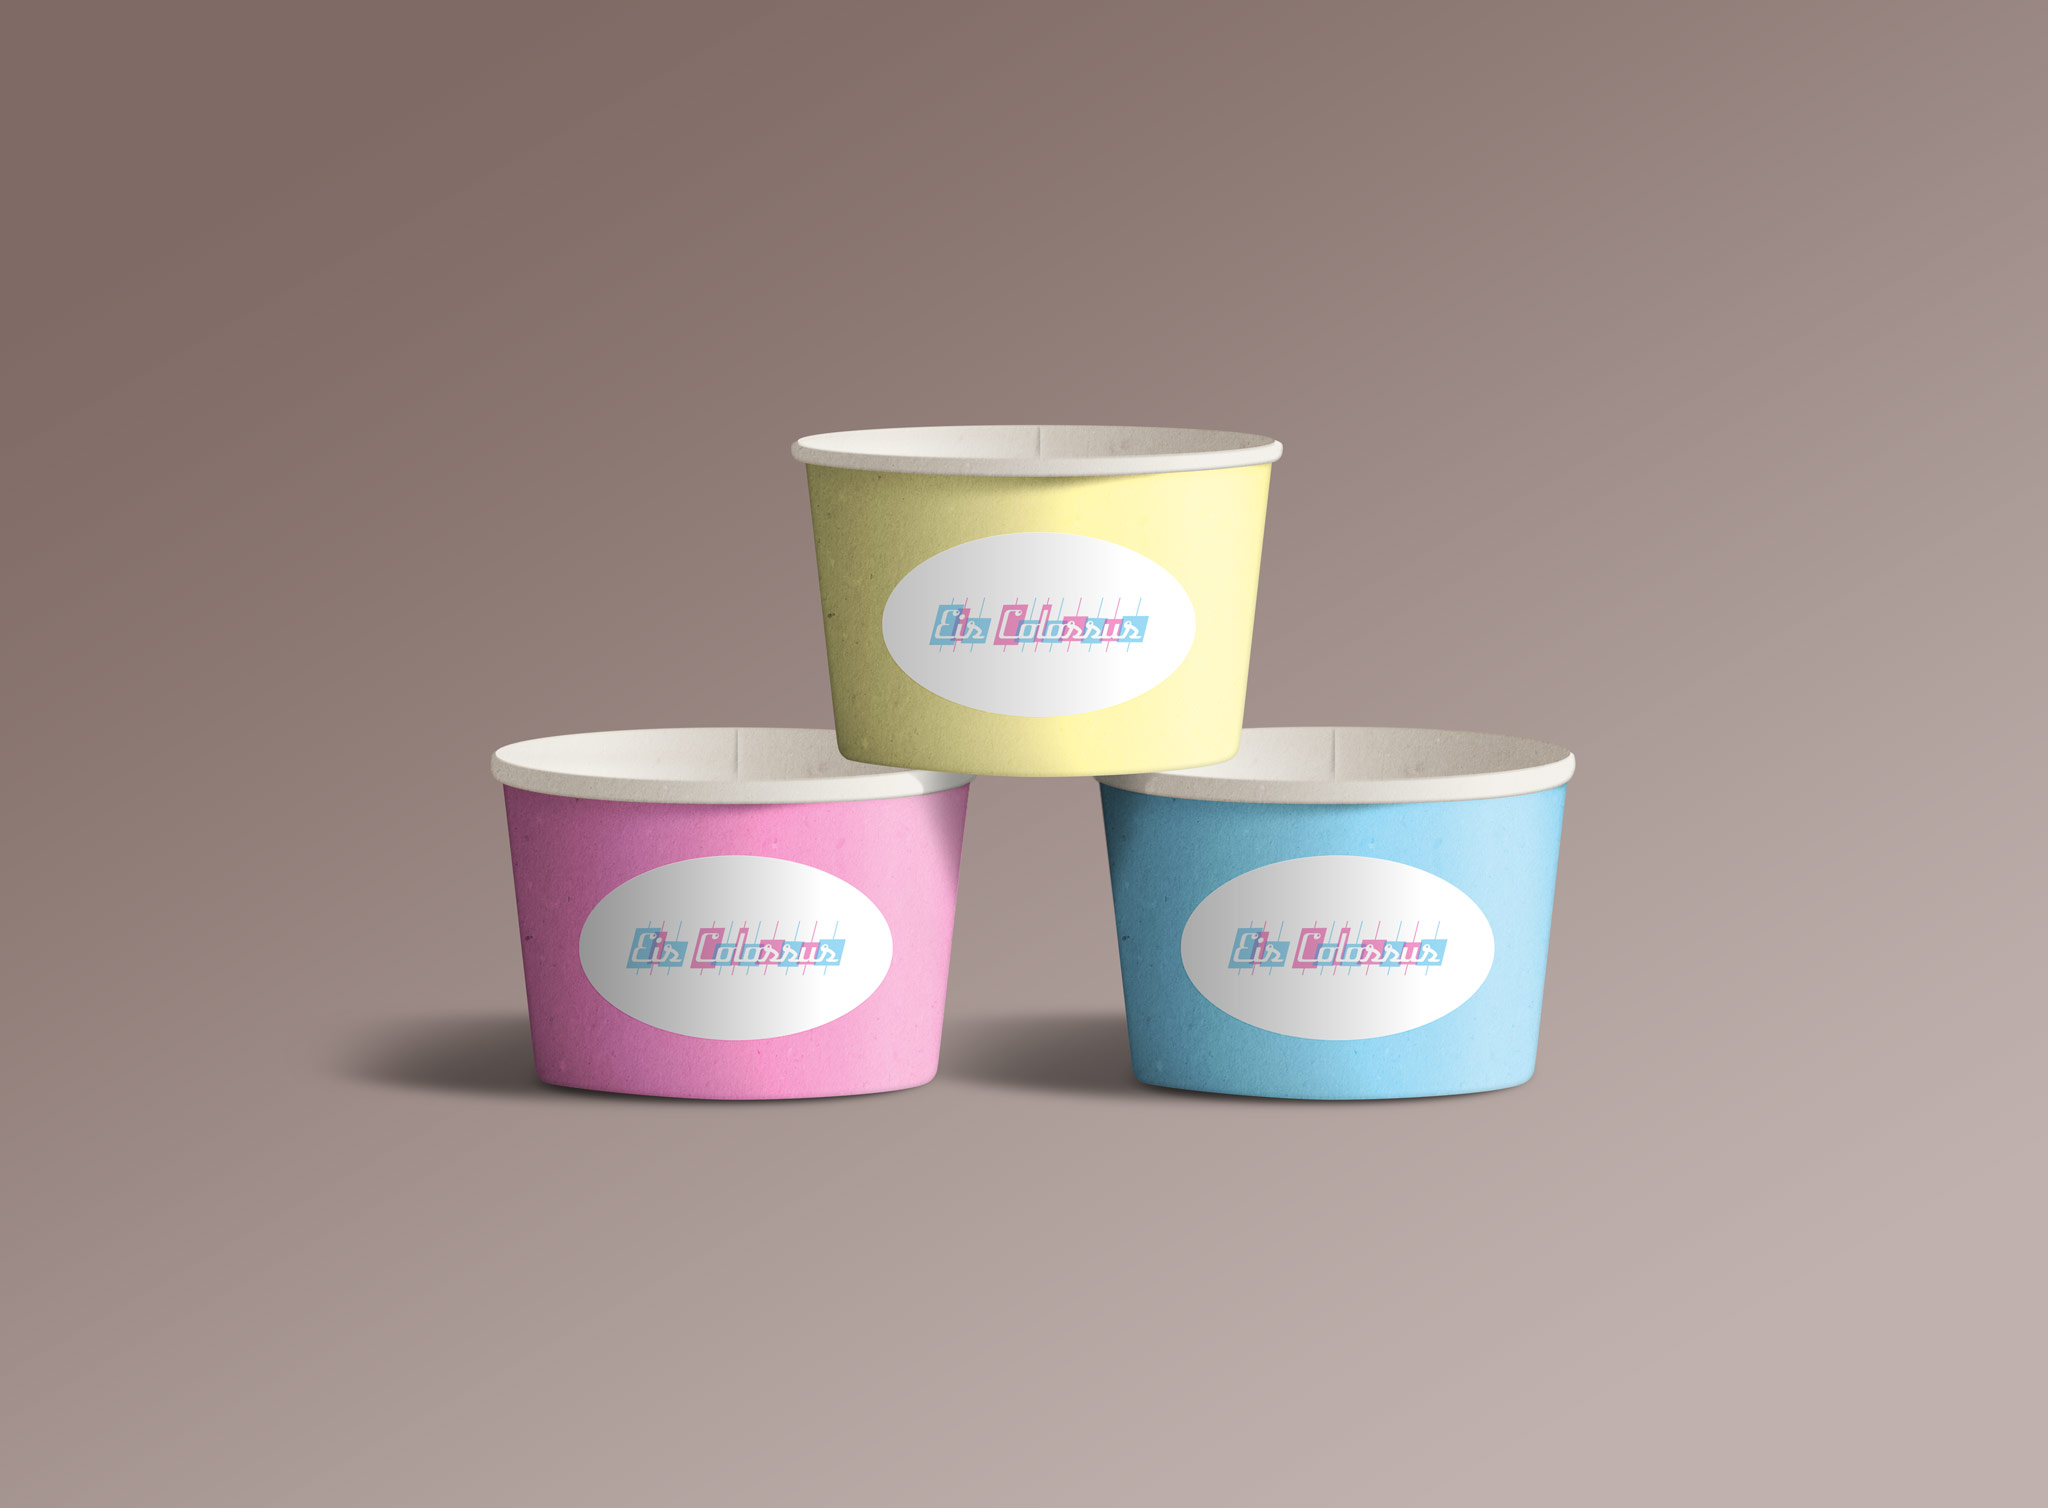 Eis Colossus Eisbecher Corporate Design Packaging Gesa Siebert Kommunikationsdesign